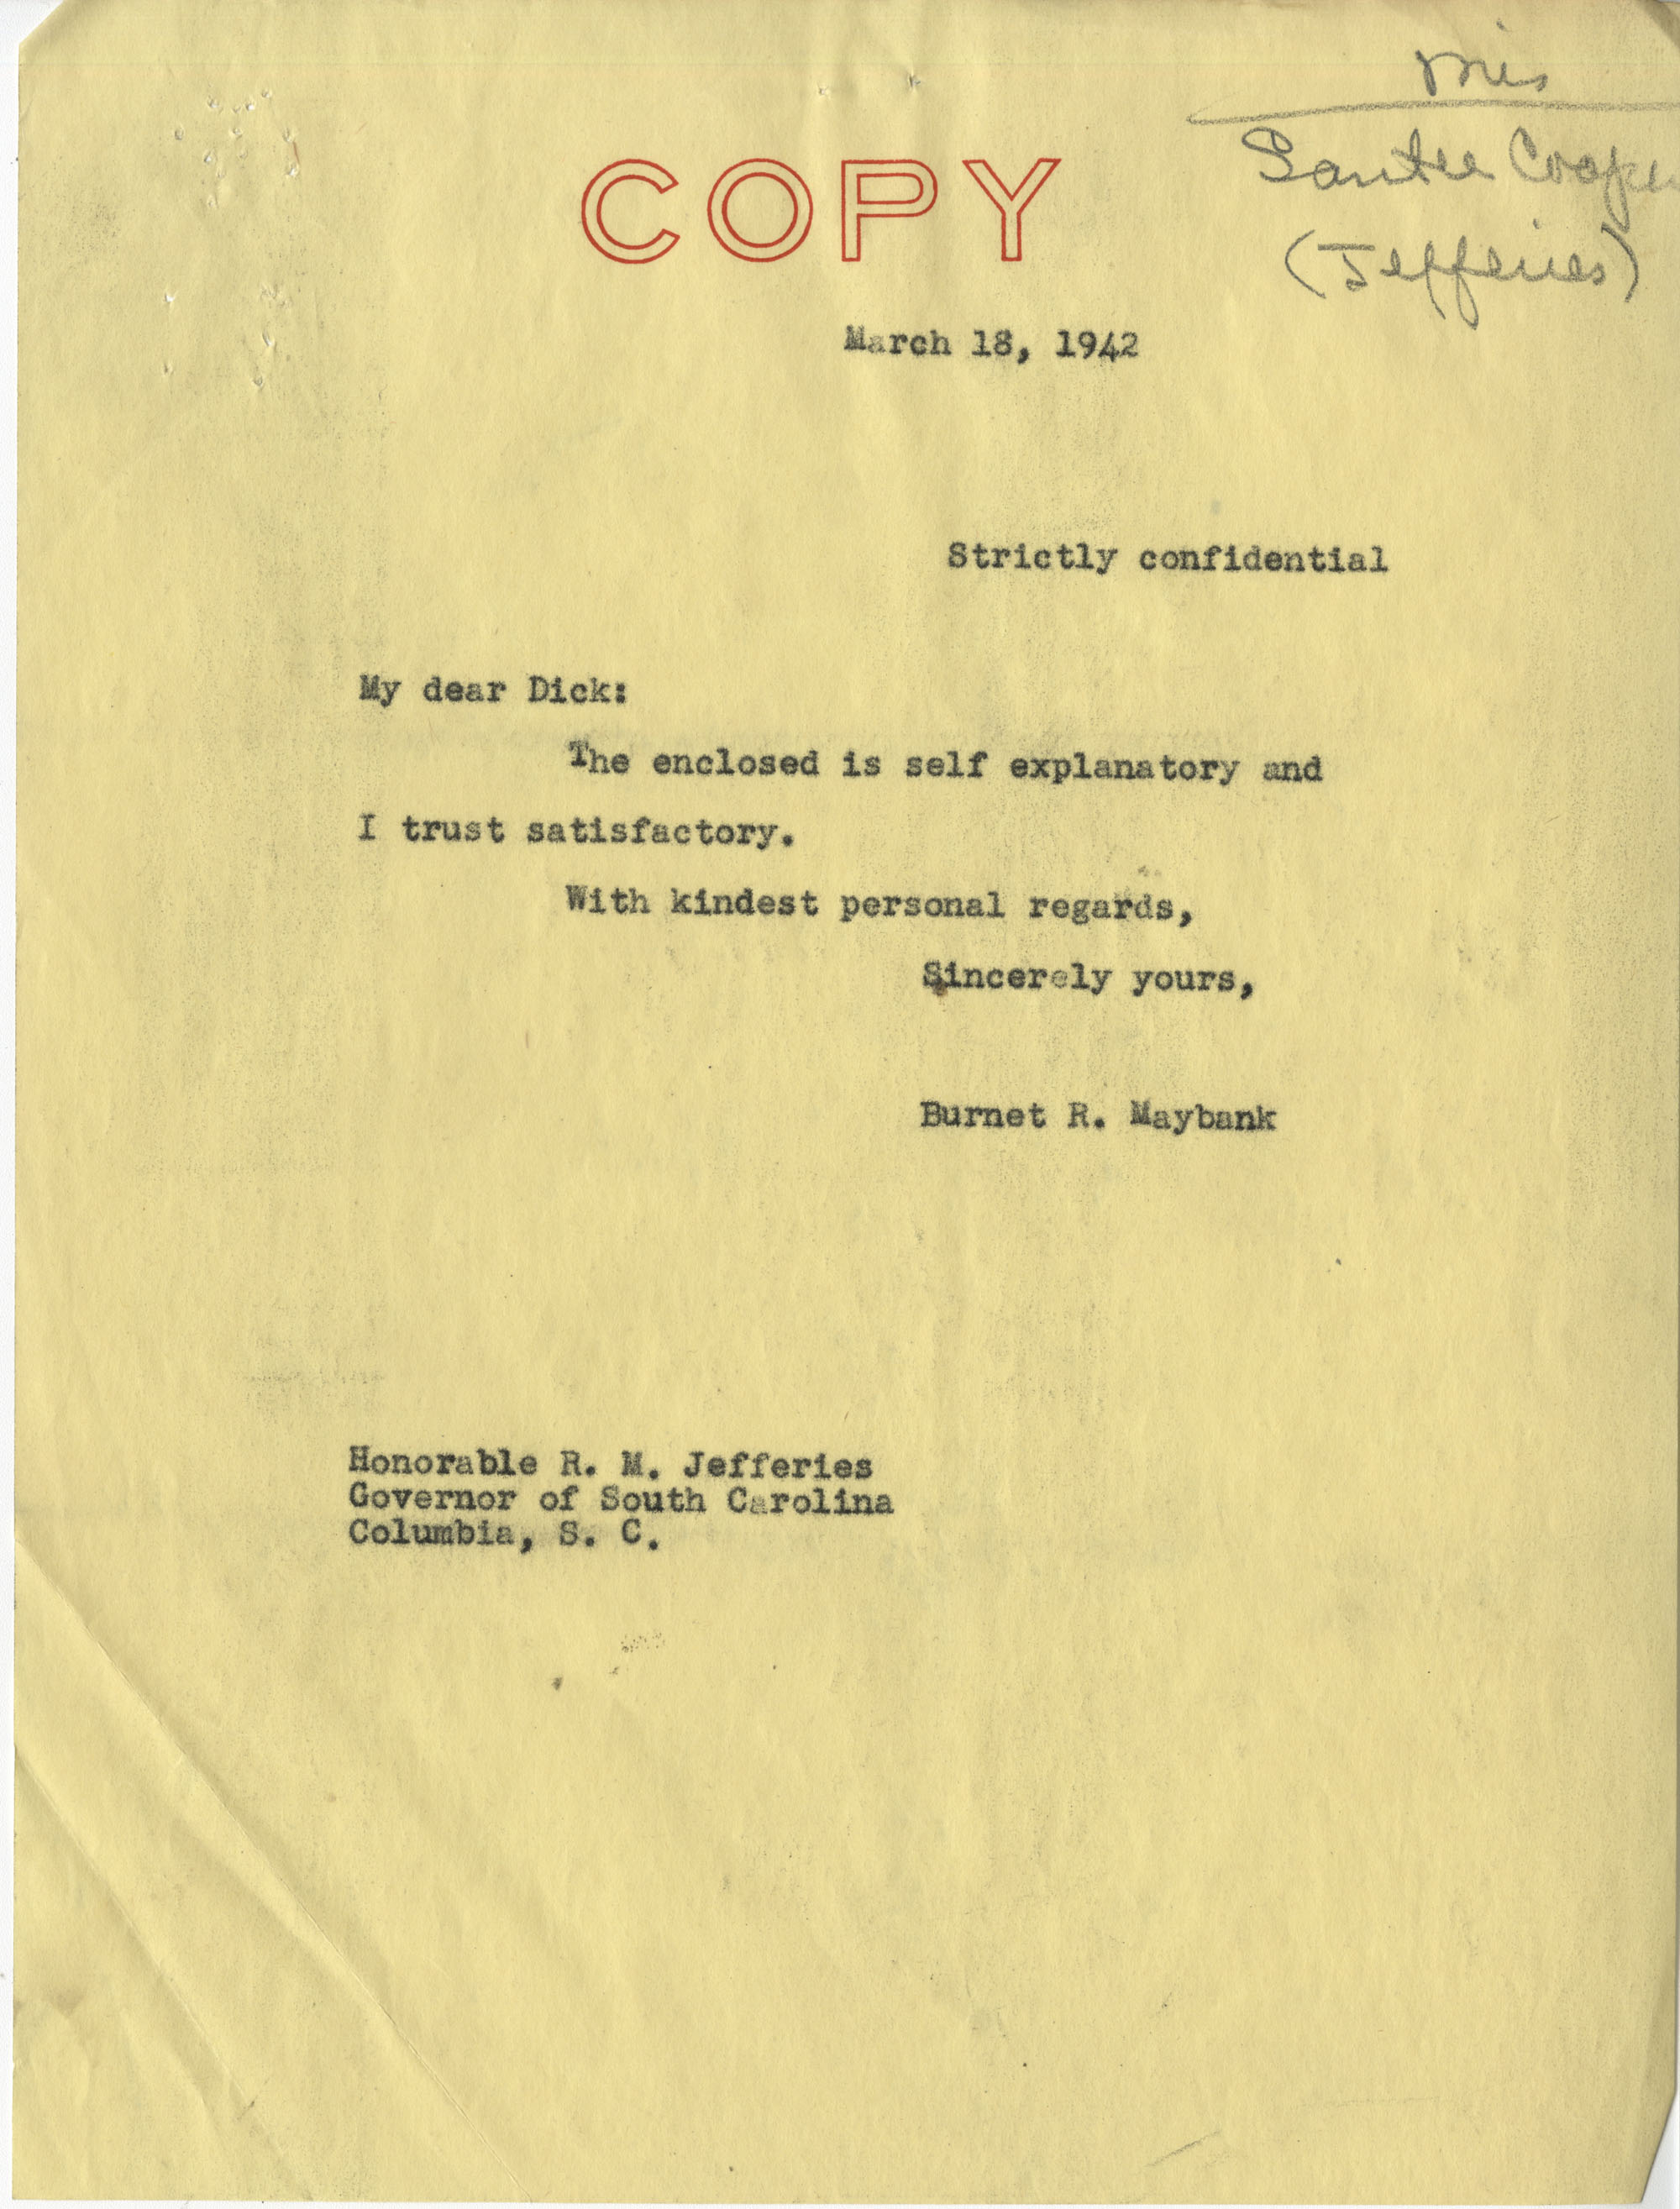 Santee-Cooper: Correspondence between Senator Burnet R. Maybank, Baird Snyder (Administrator of the Federal Works Agency), and South Carolina Governor Richard M. Jefferies, March 1942